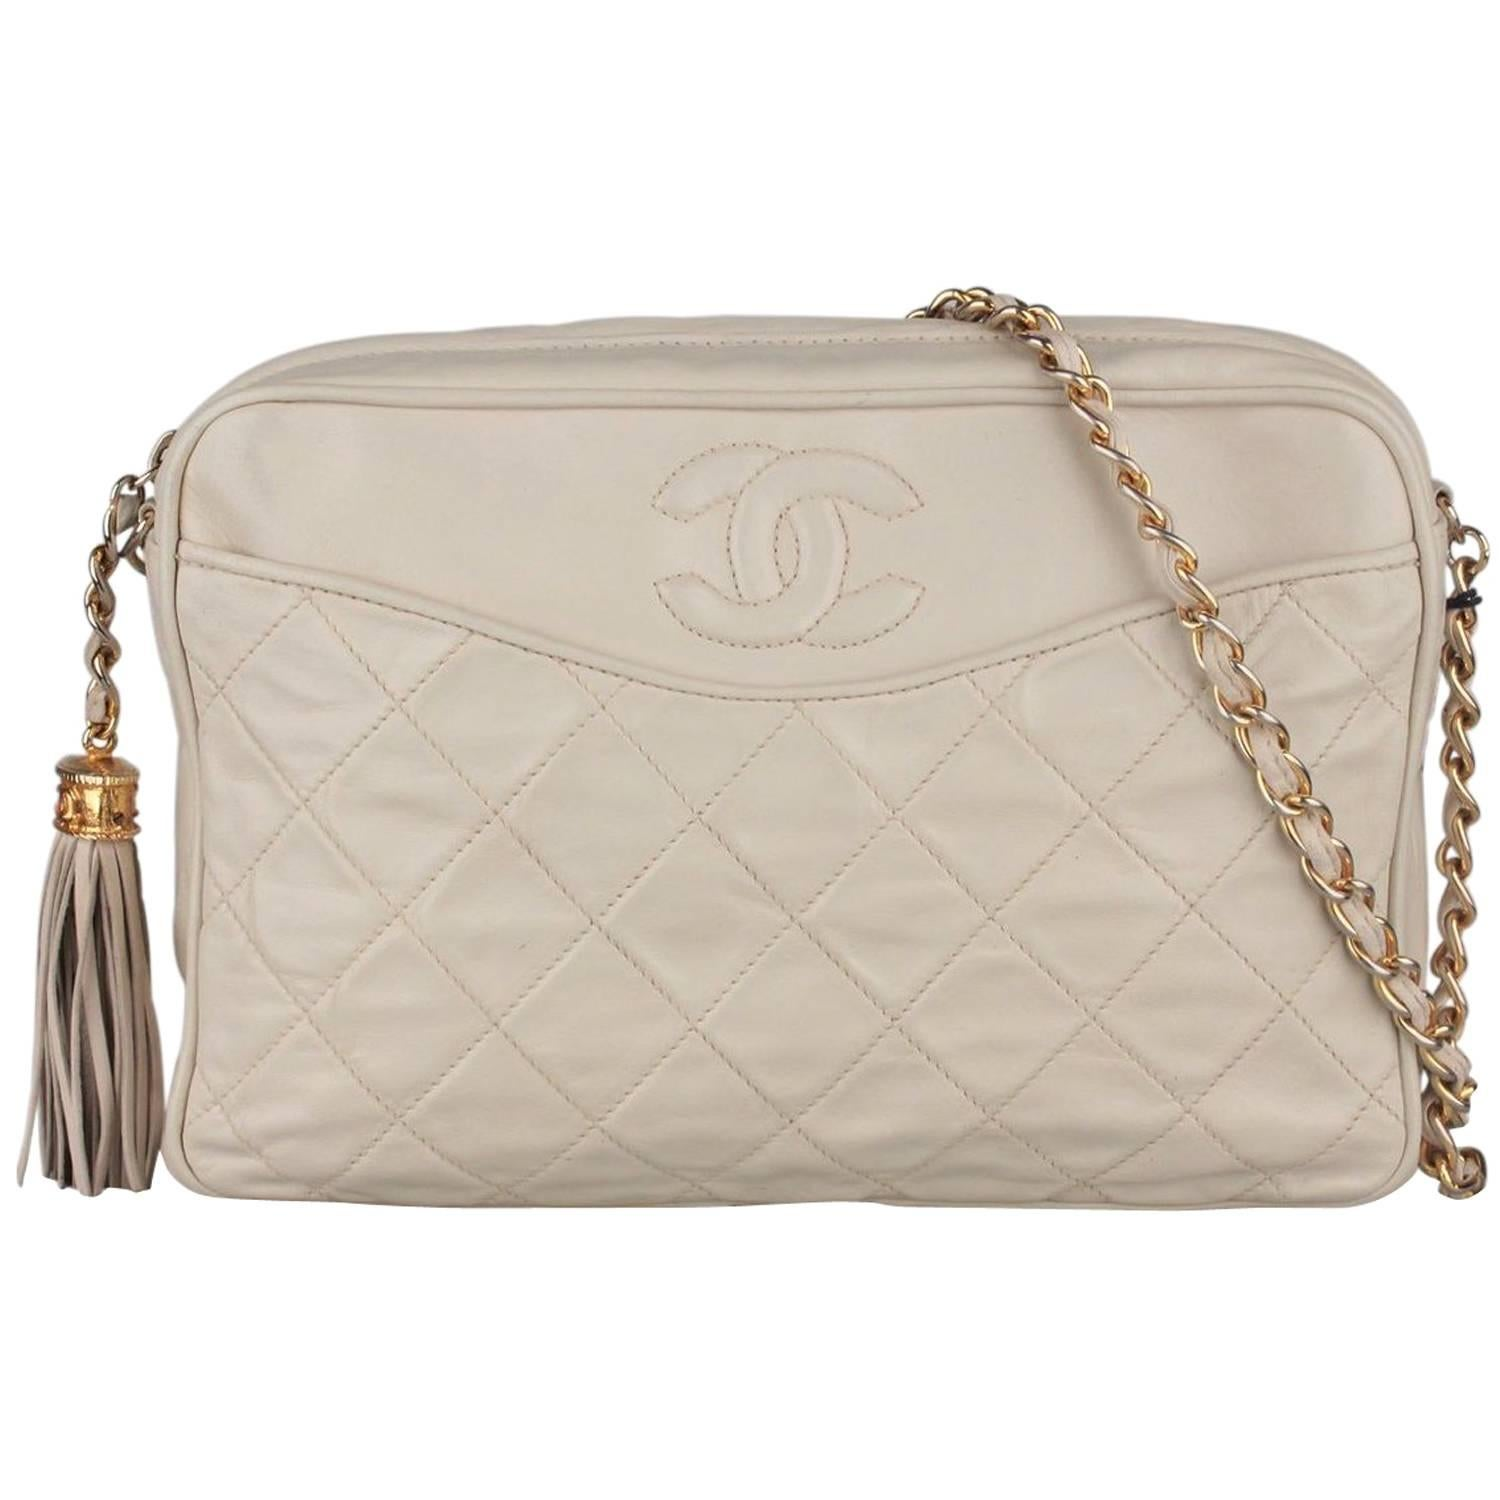 912529d2391c CHANEL Vintage Ivory QUILTED Leather CC Stitch CAMERA BAG w/ Tassel For  Sale at 1stdibs